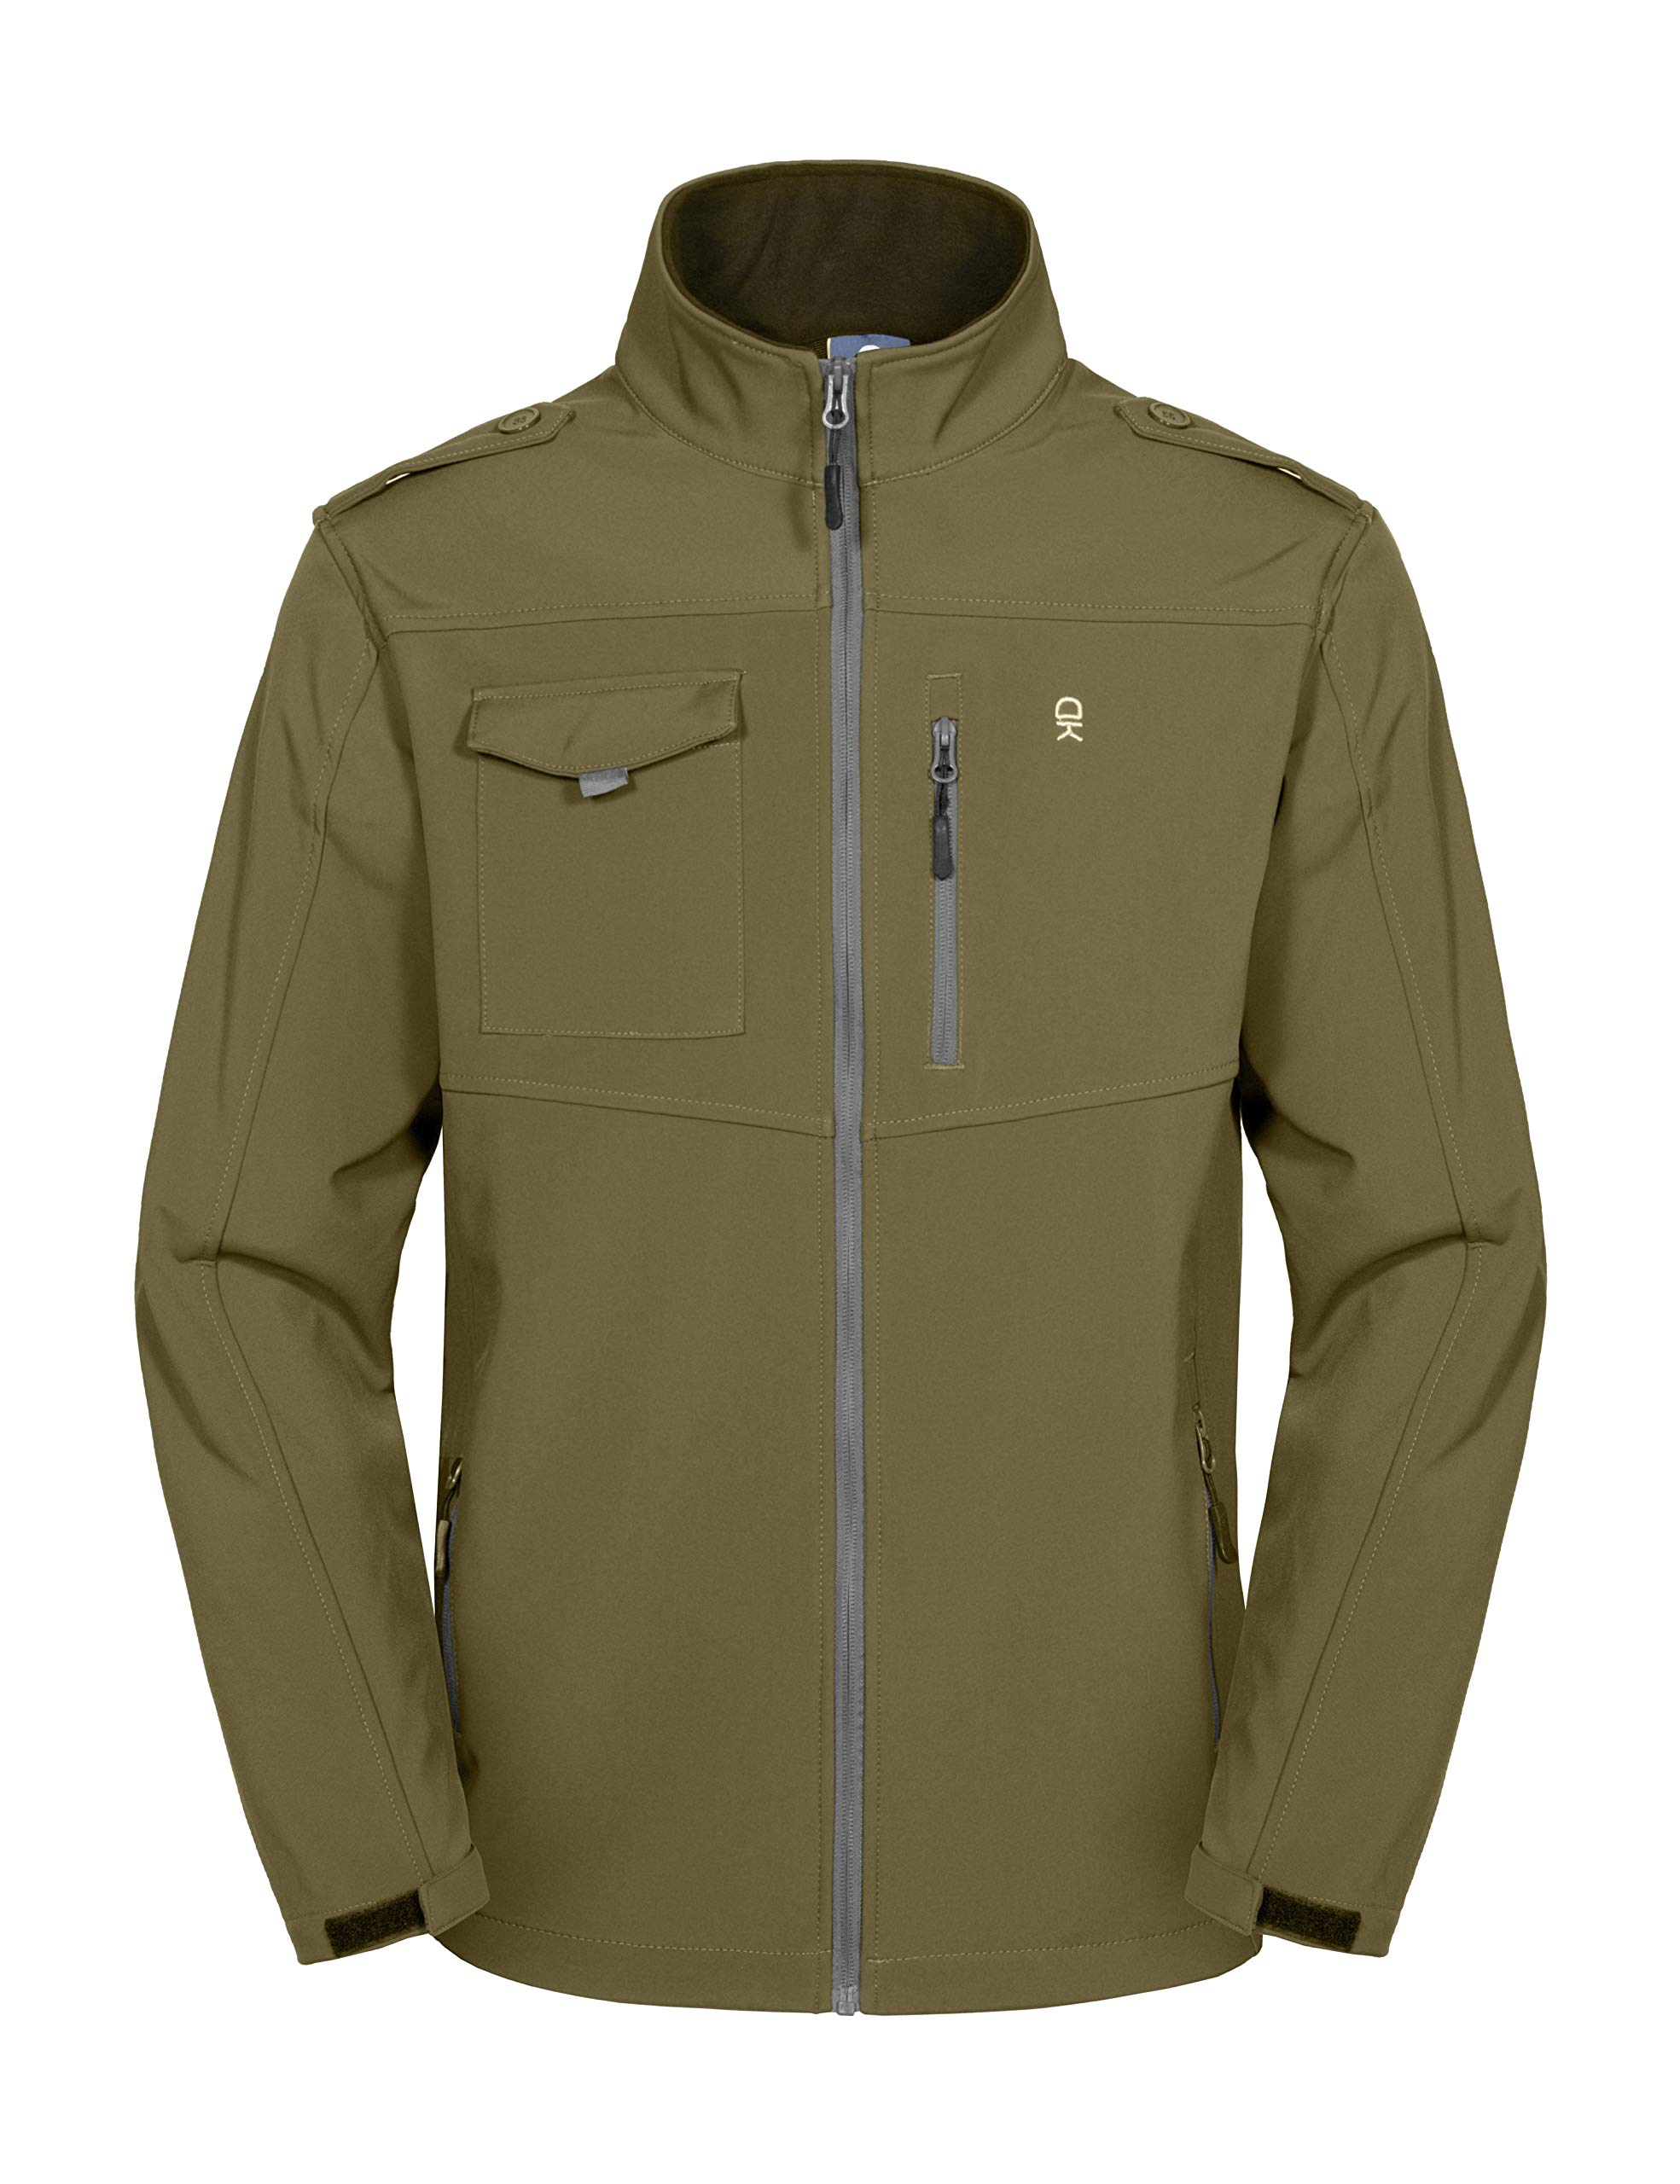 Little Donkey Andy Men's Fleece Lined Softshell Jacket, Lightweight Tactical Jacket, Water Repellent, Breathable Olive XL by Little Donkey Andy